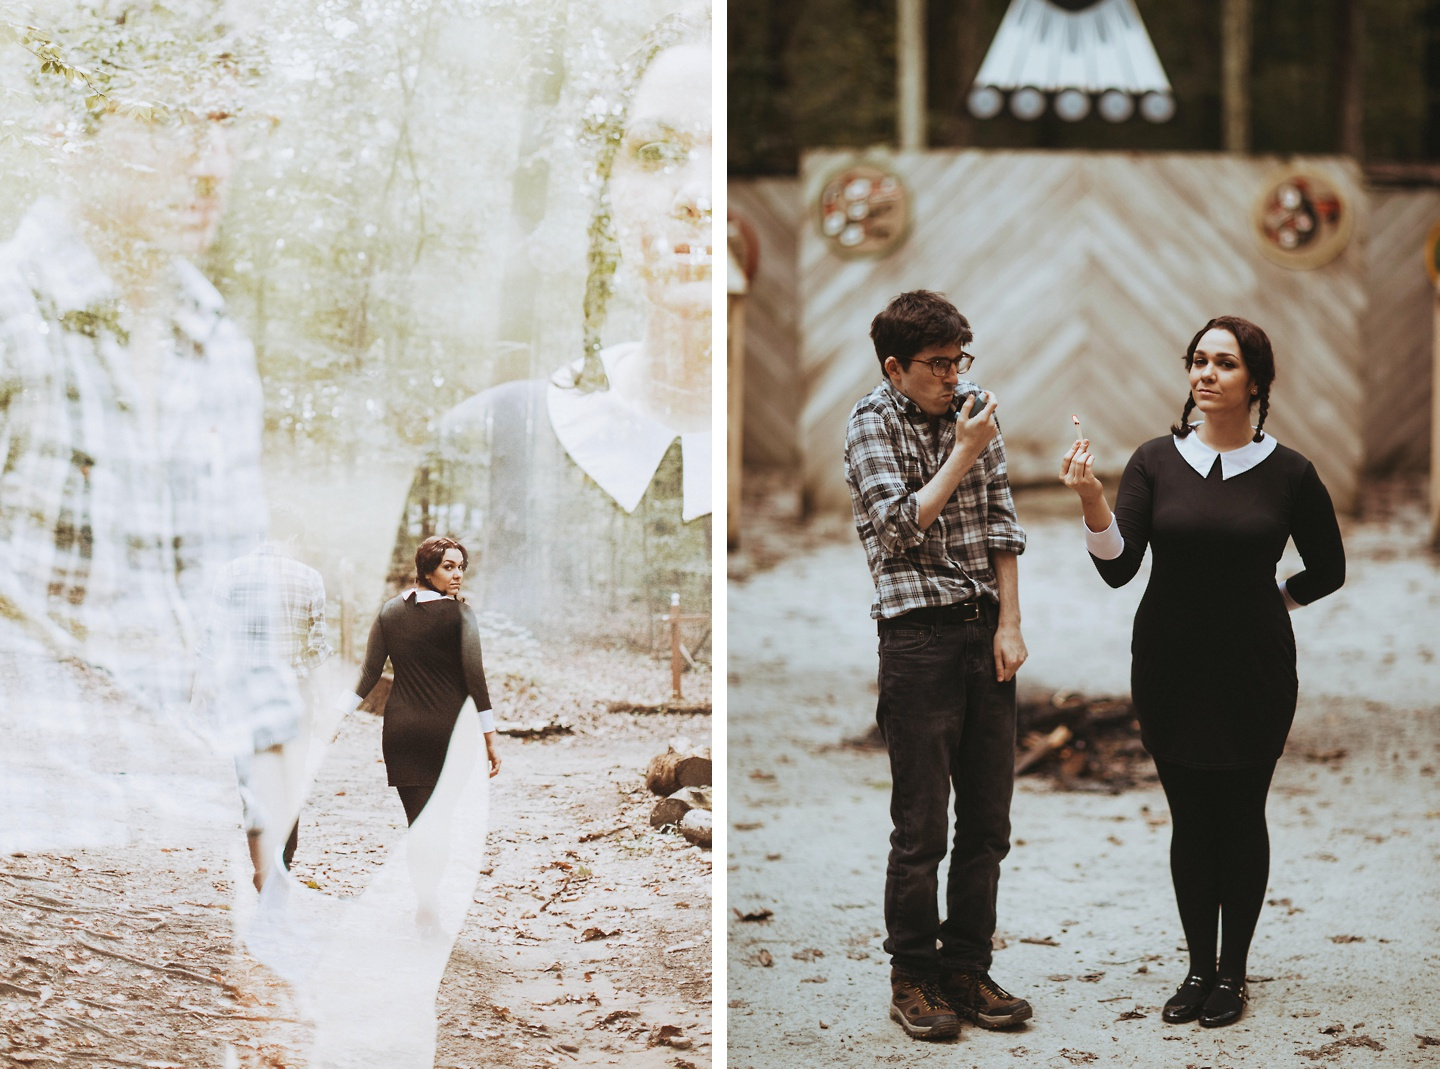 engagement photos addams family values